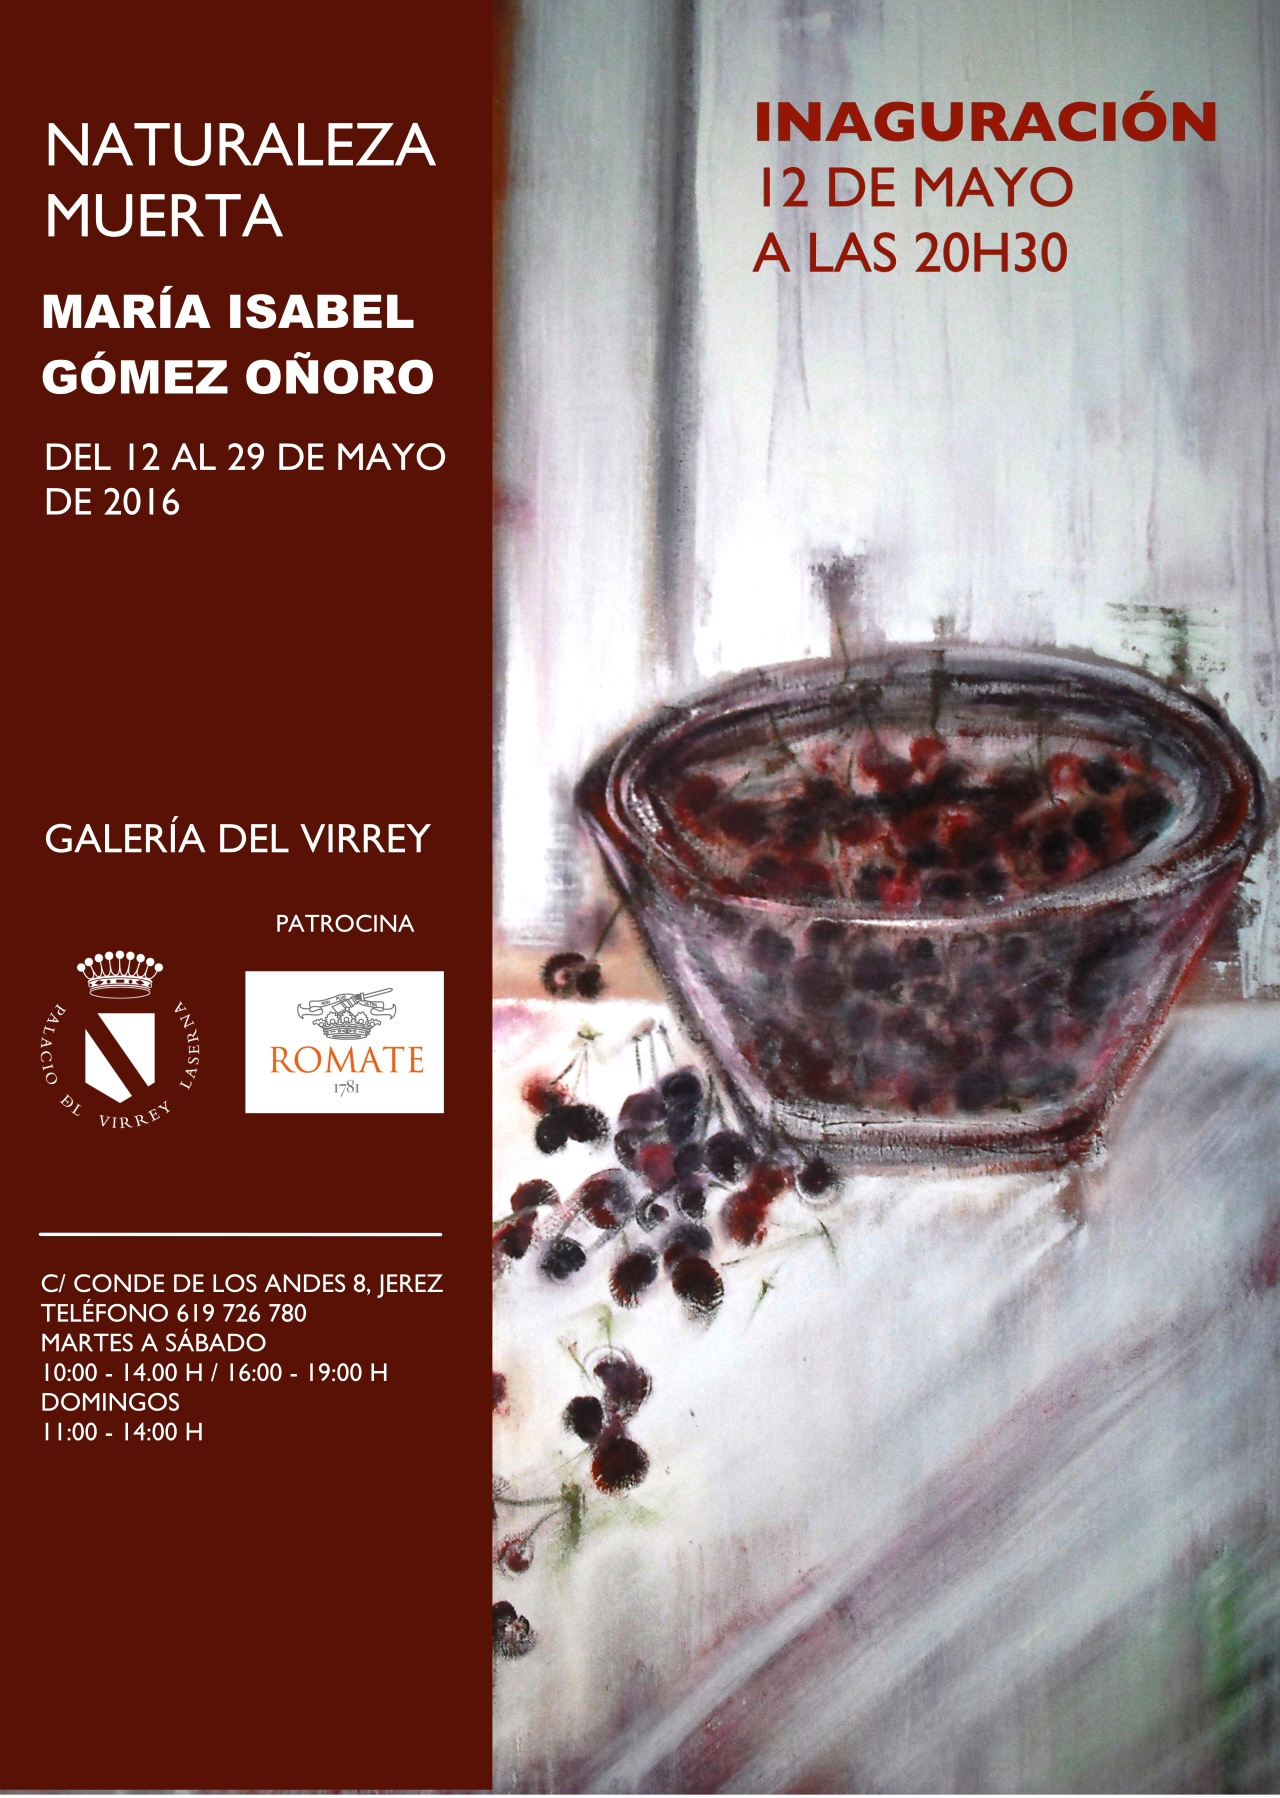 Discover Sherry recommends: Nueva exposición en la Galería del Virrey en Jerez. New exhibit at the Virrey Gallery in Jerez